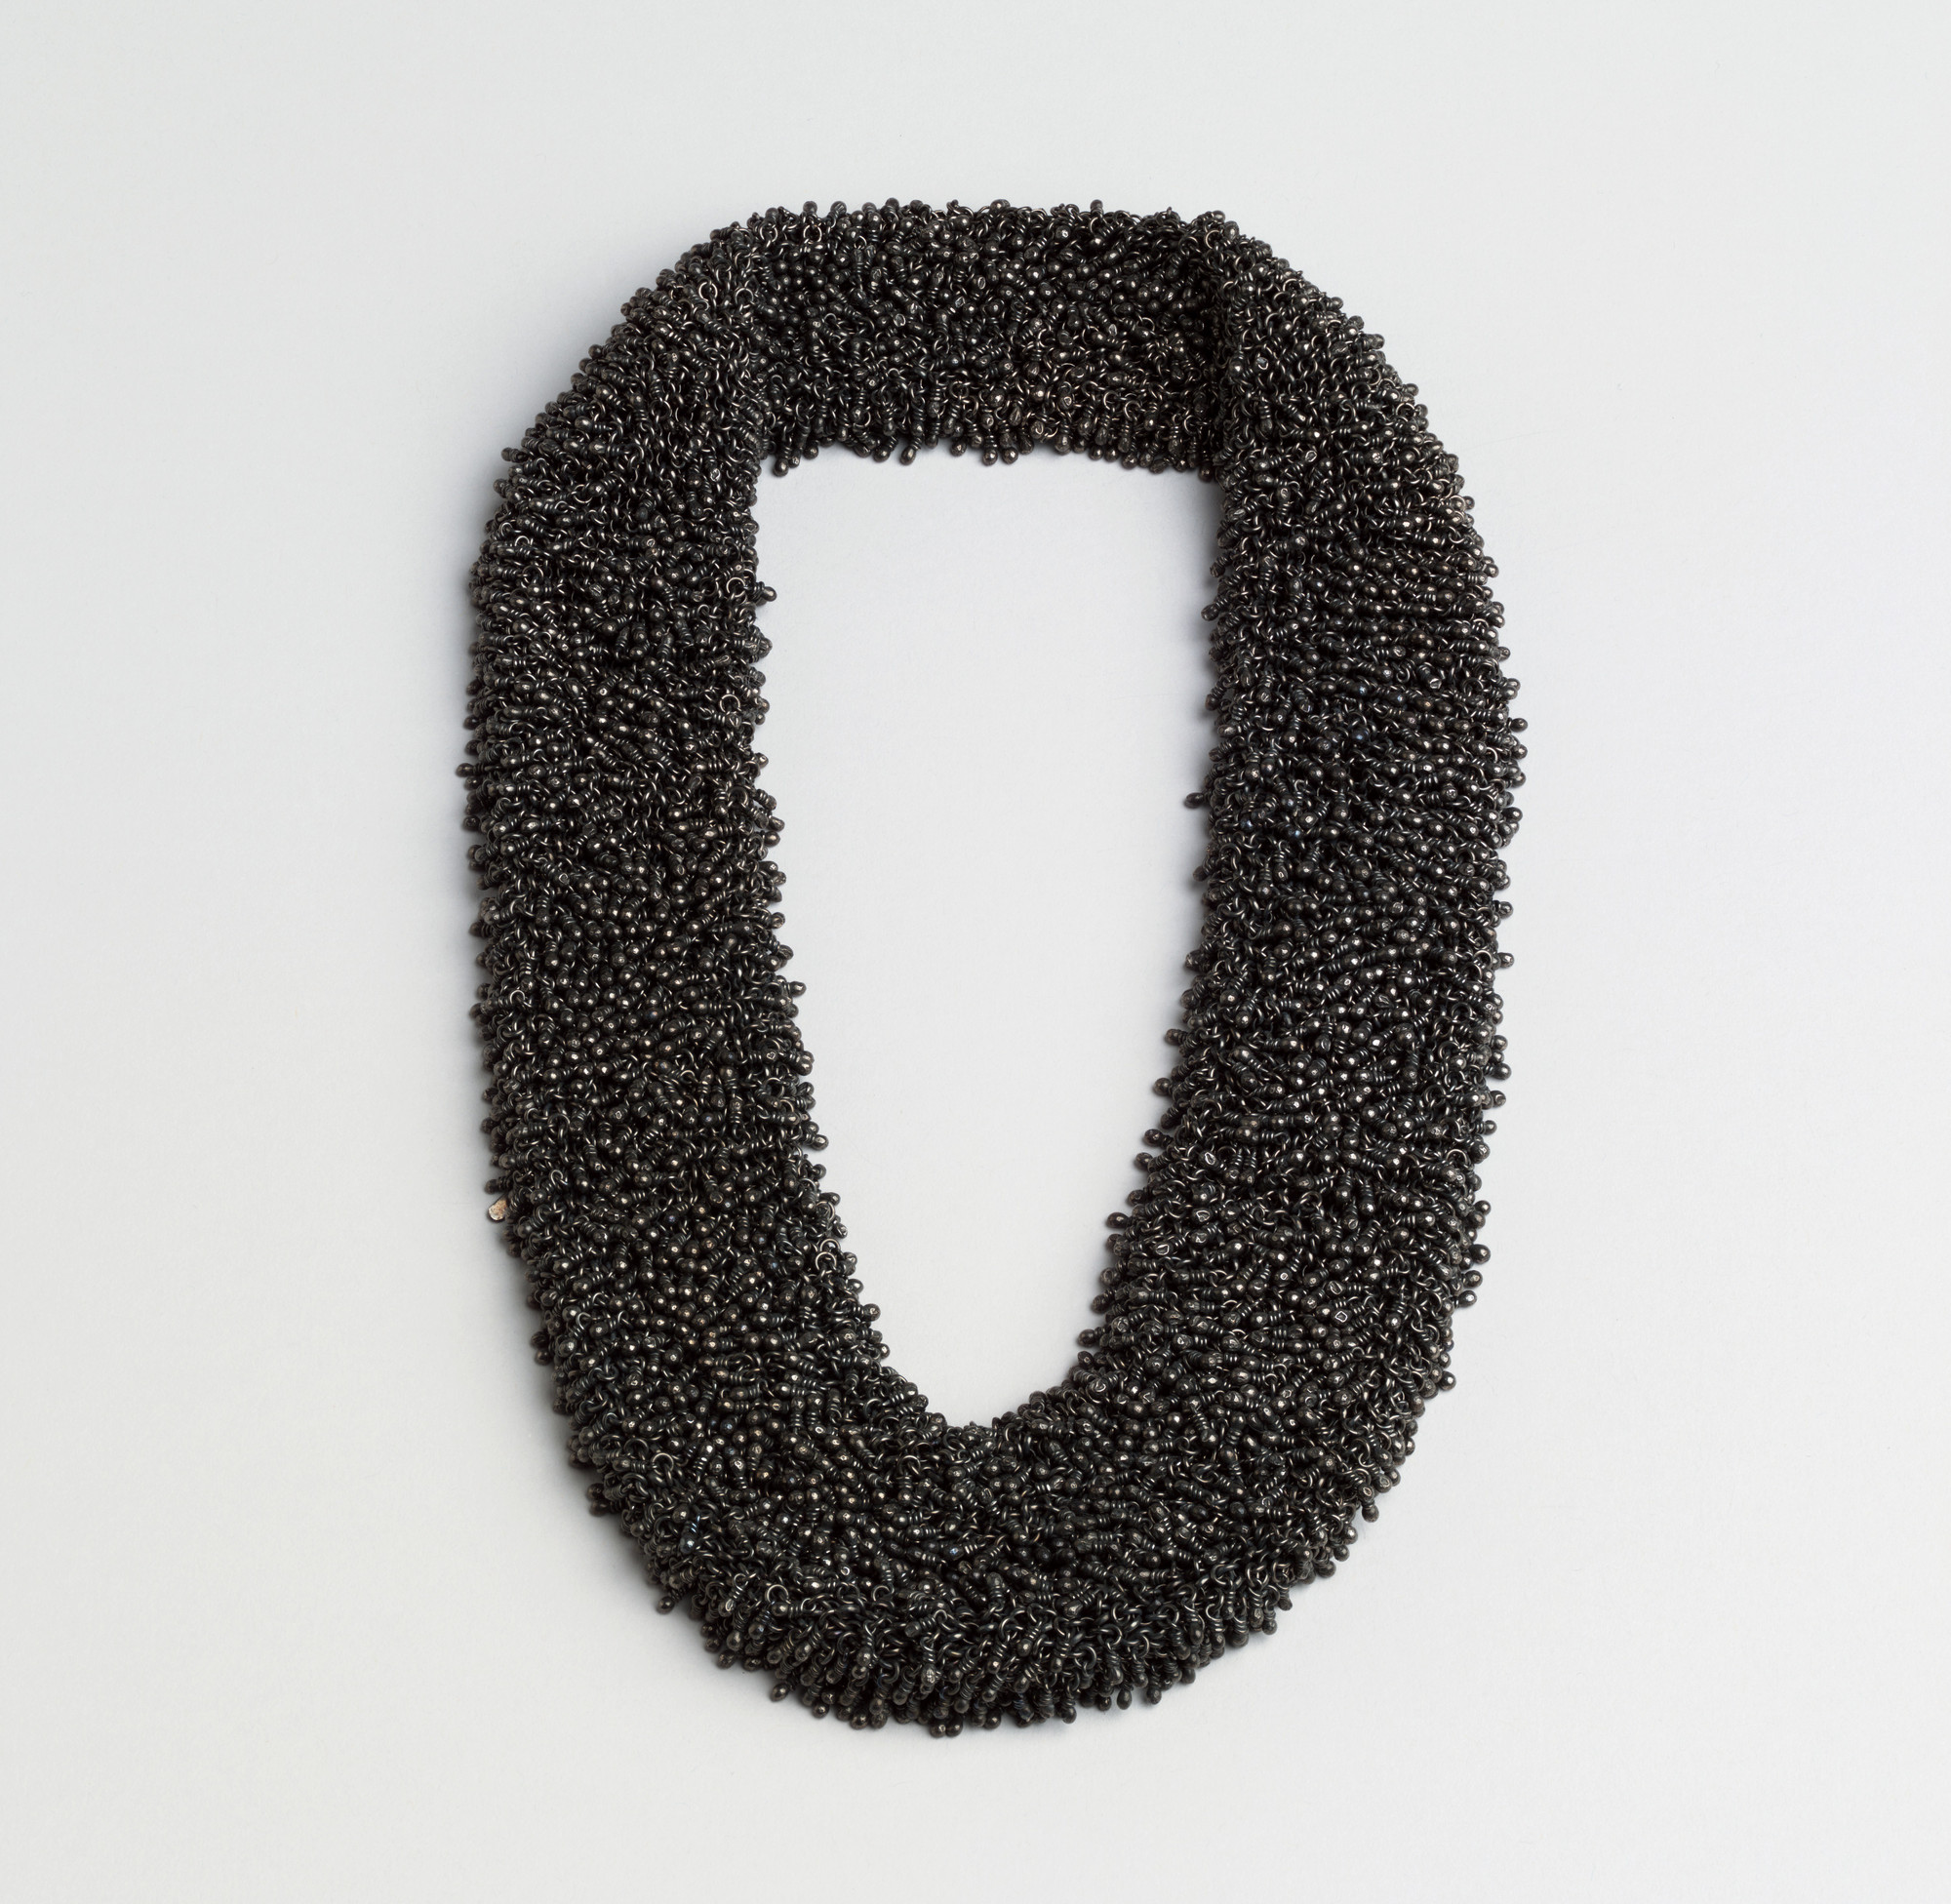 Tone Vigeland. Necklace. 1986